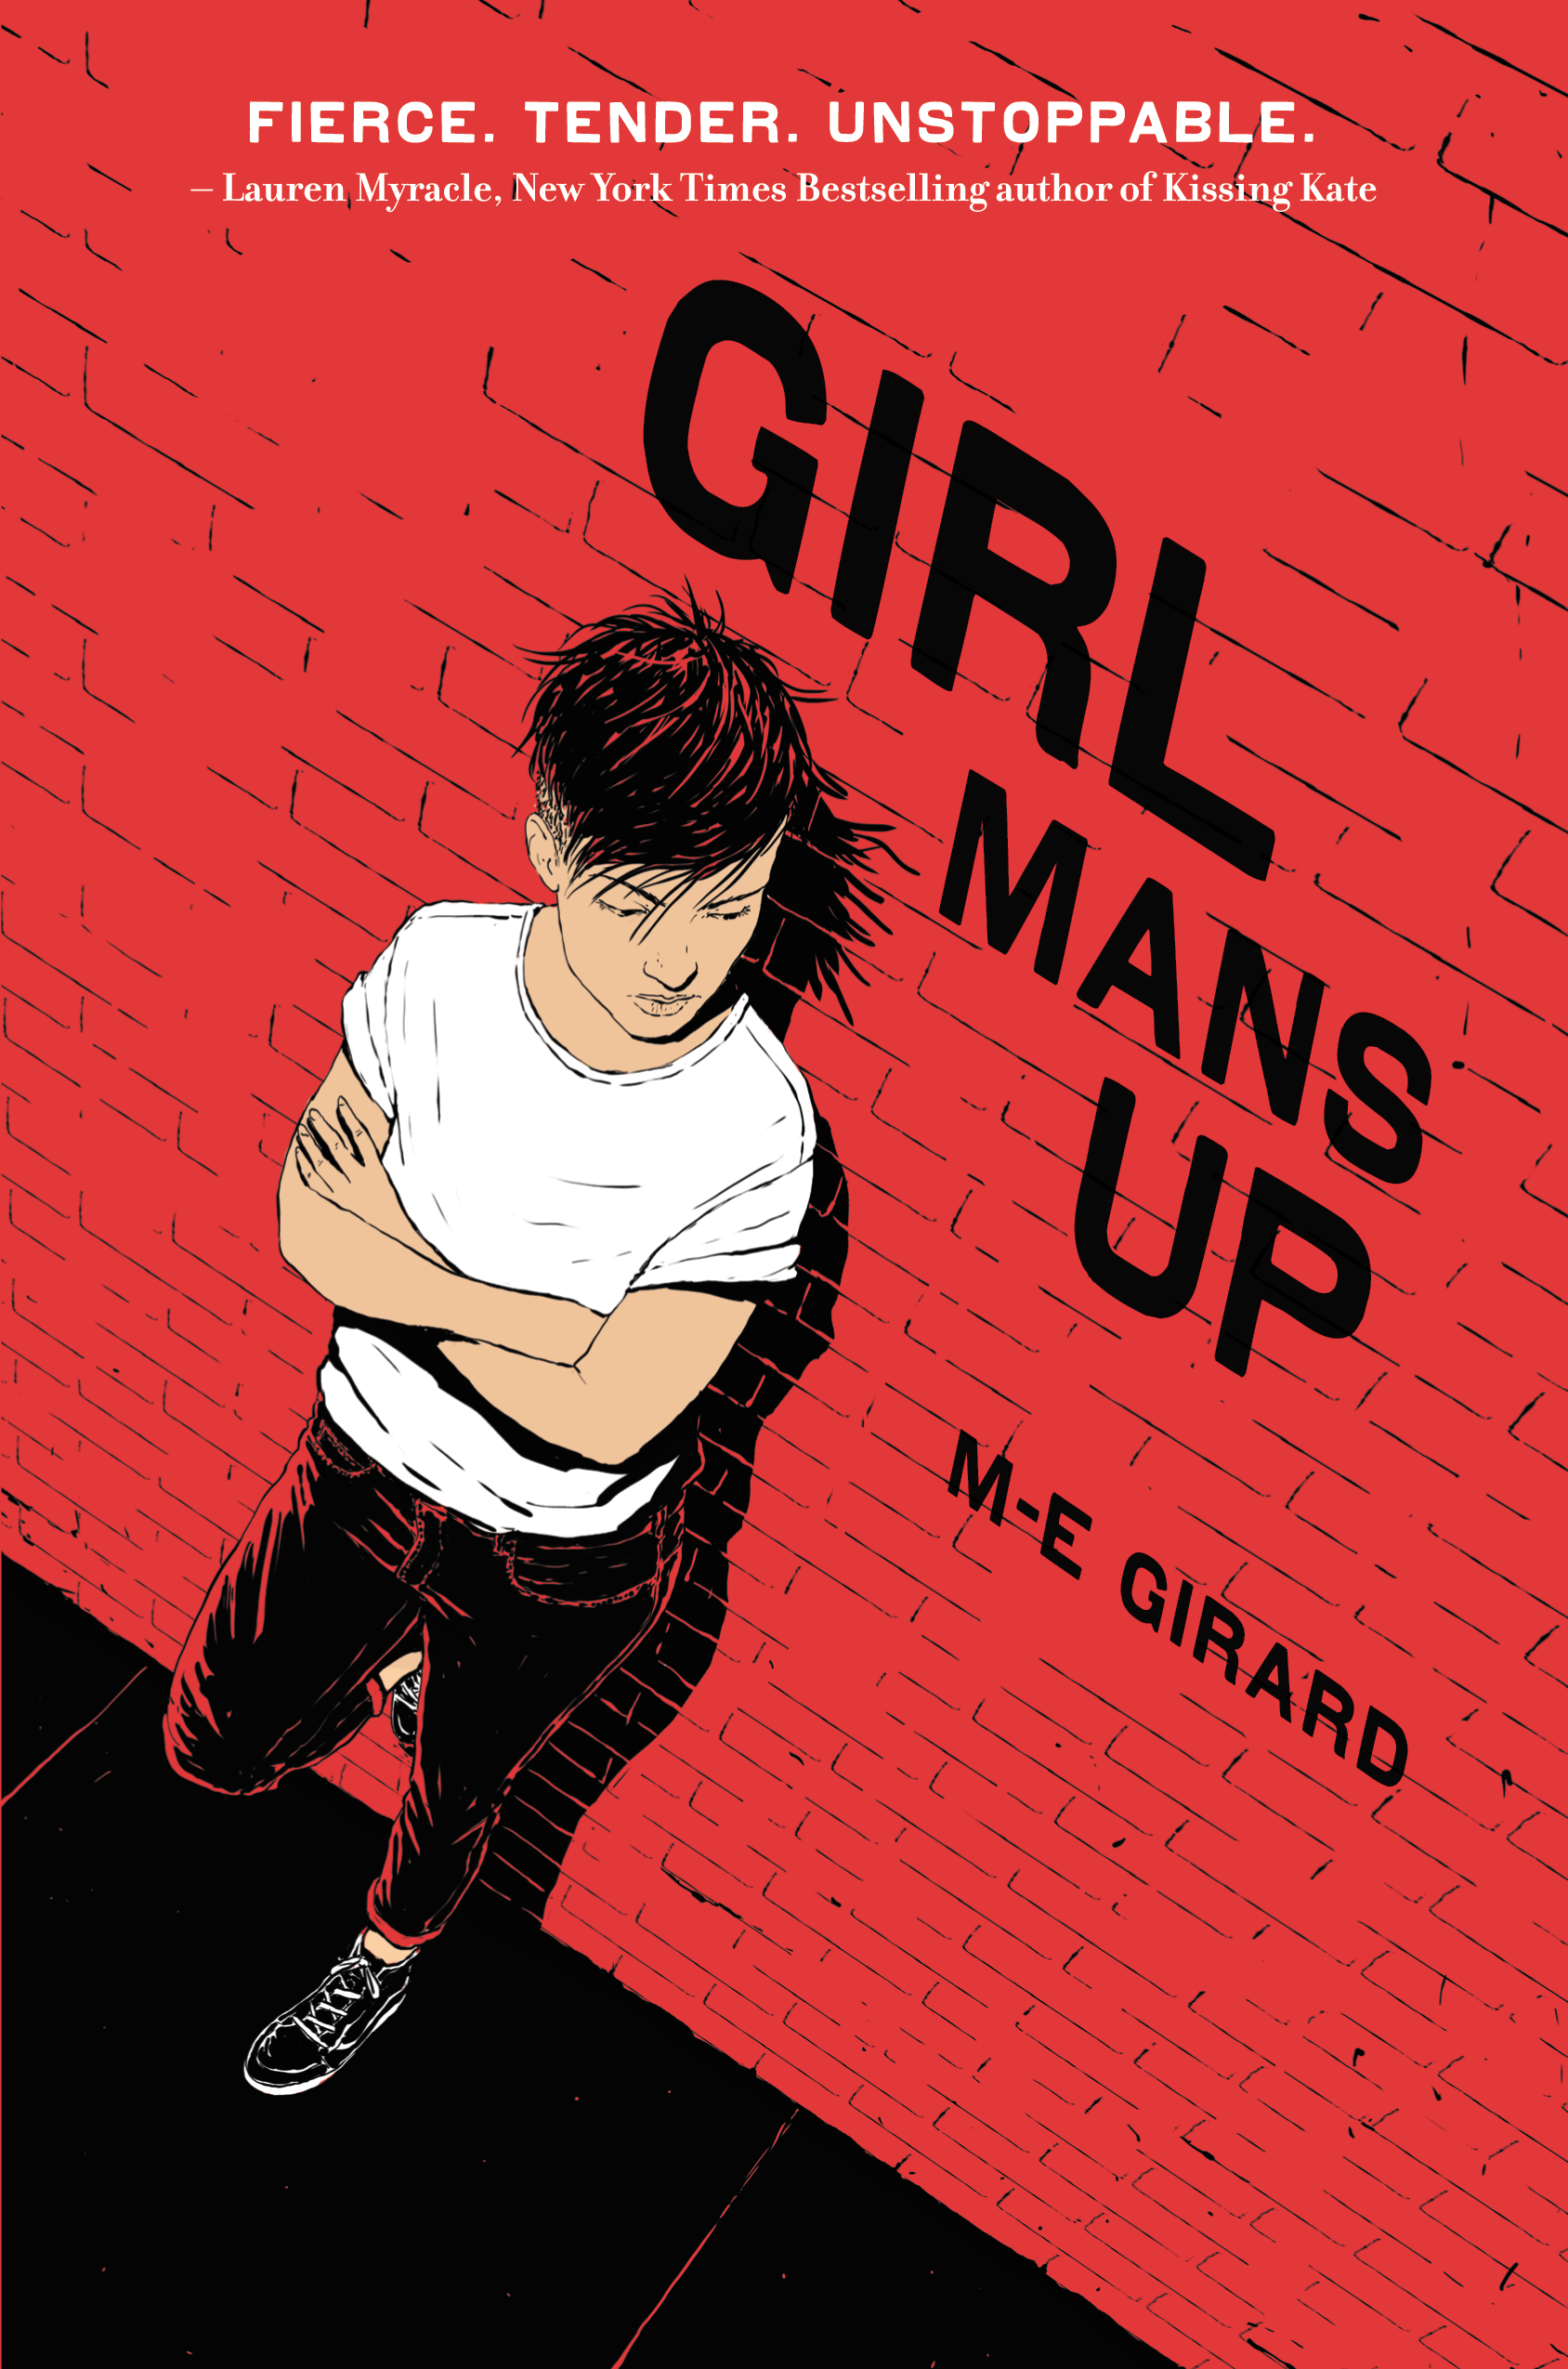 Girl Mans Up , by M-E Girard